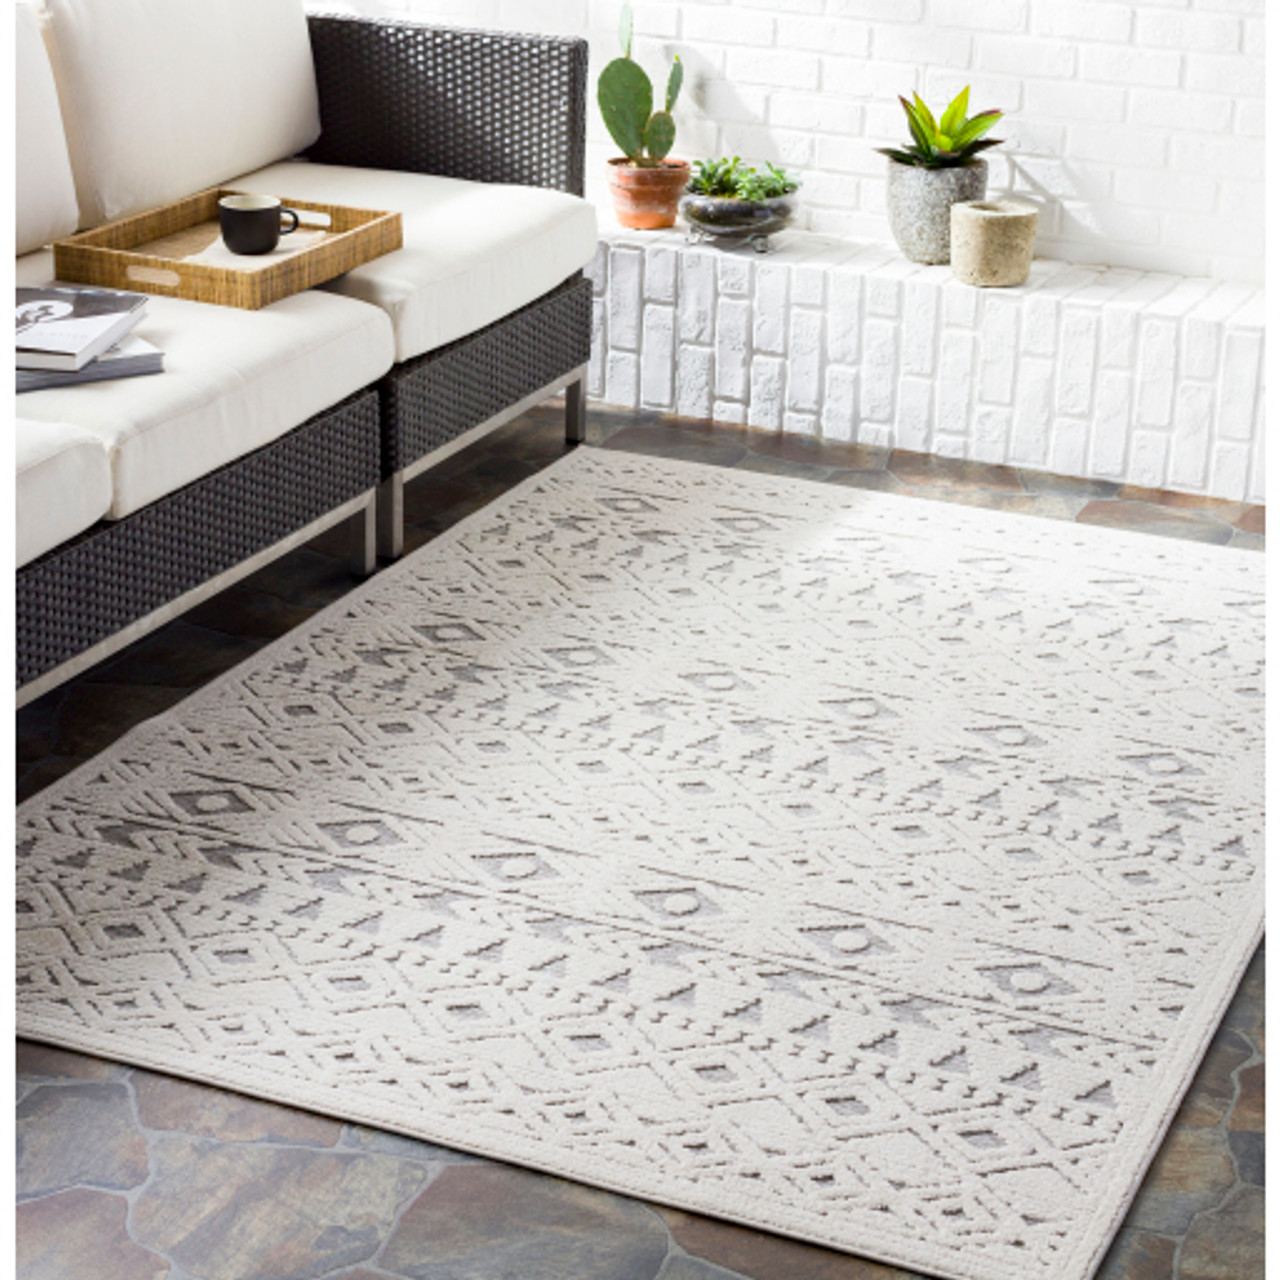 Shorr Indoor Outdoor Rug - Style 1